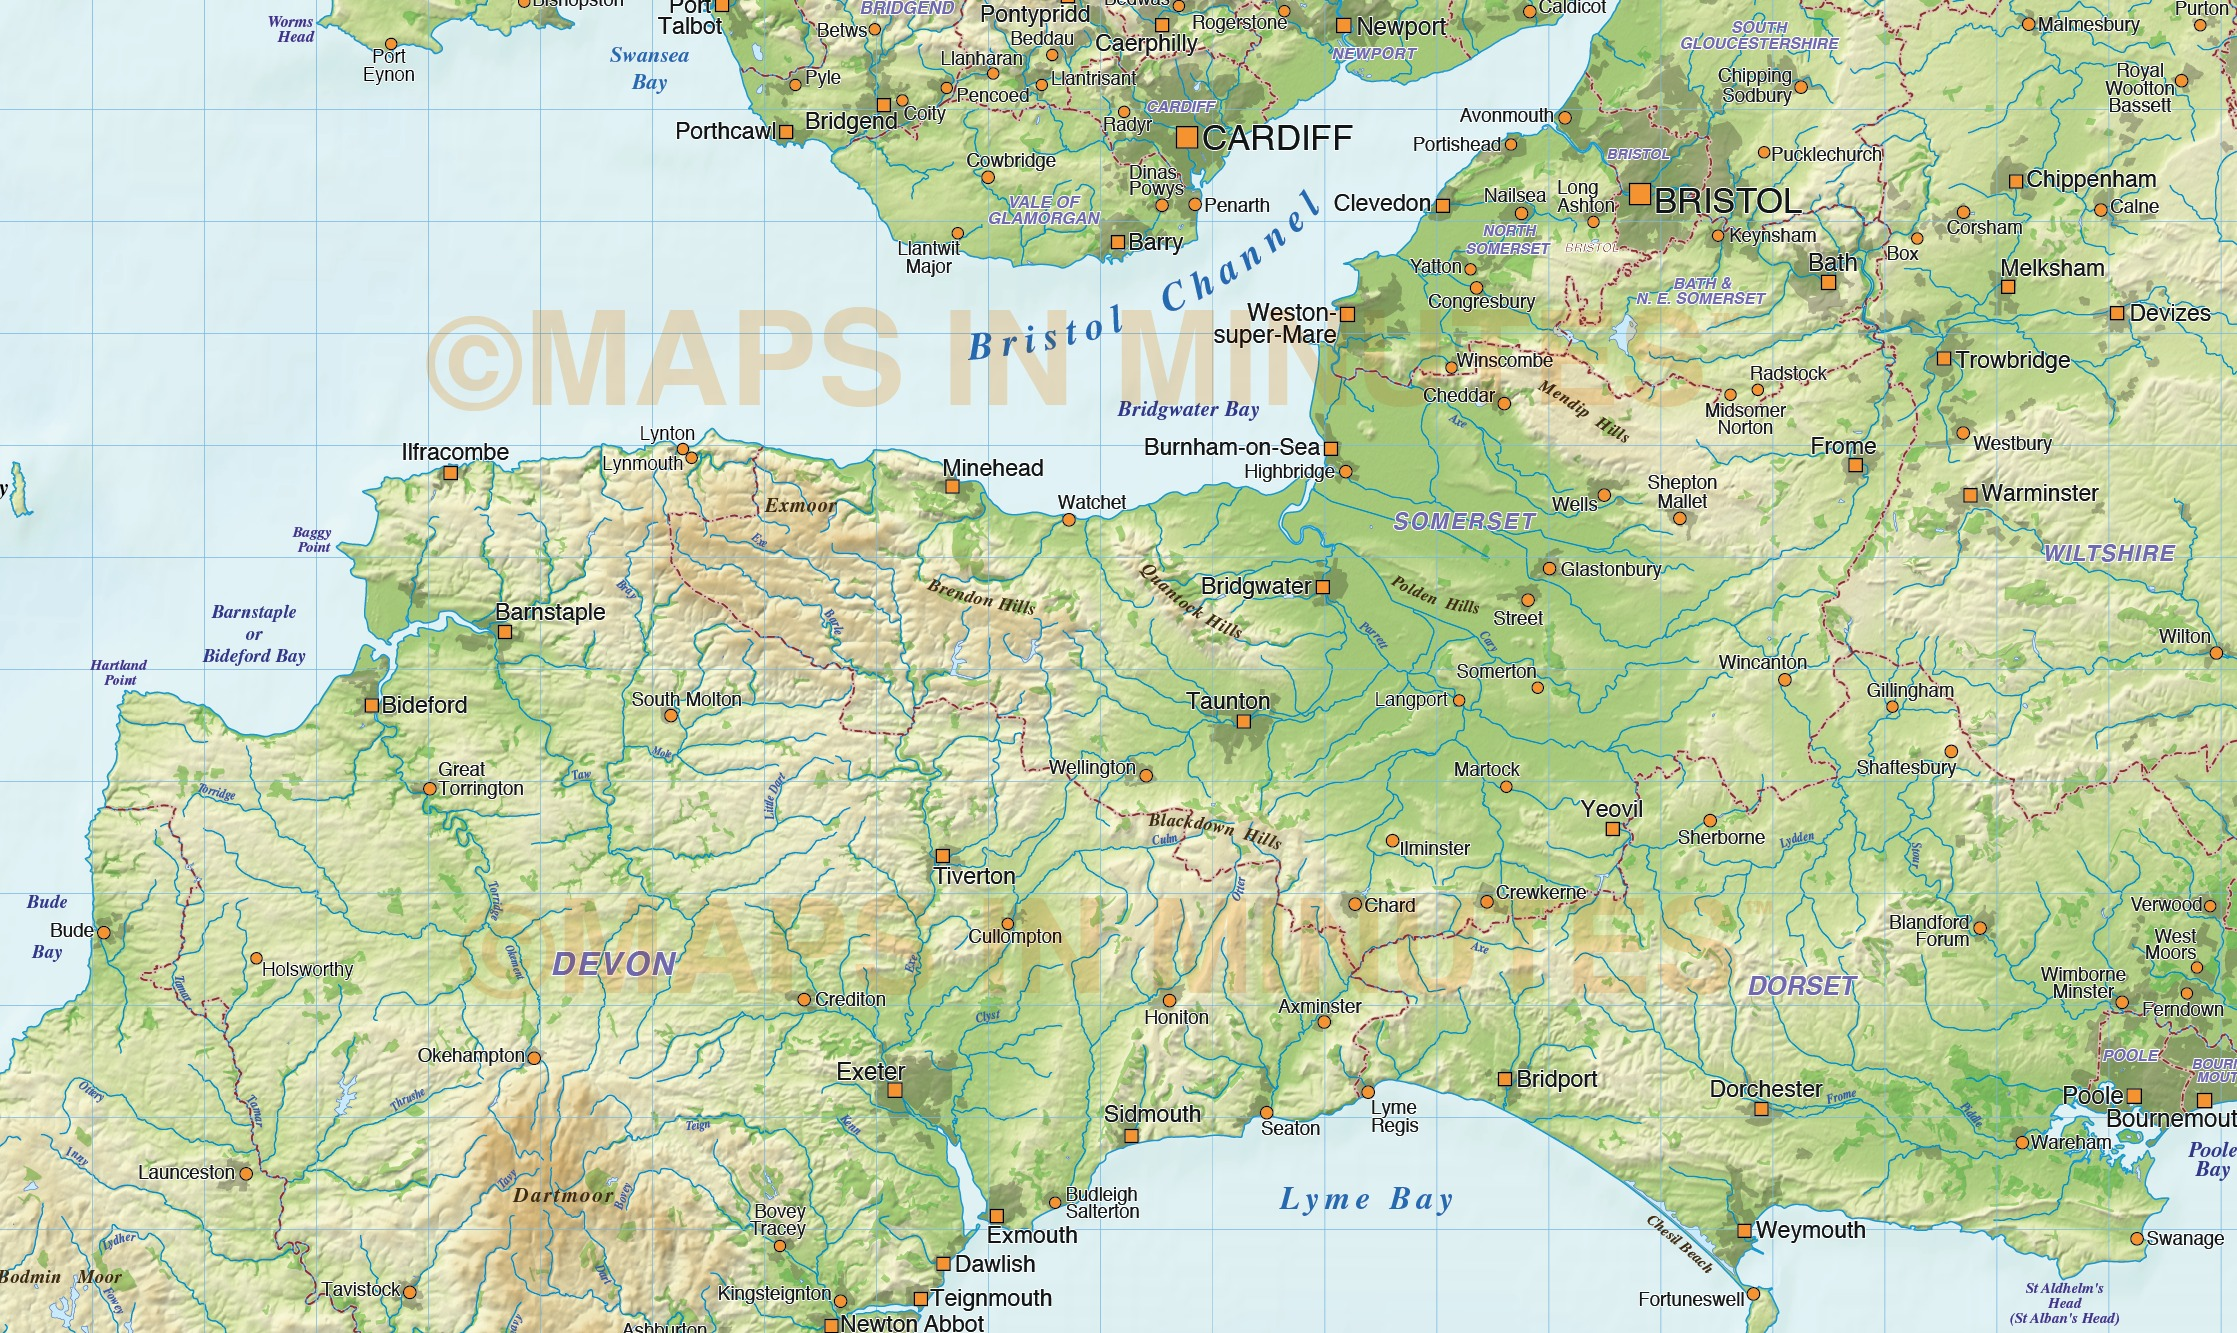 south west england county map with regular relief  1 000 000 scale in illustrator and pdf vector